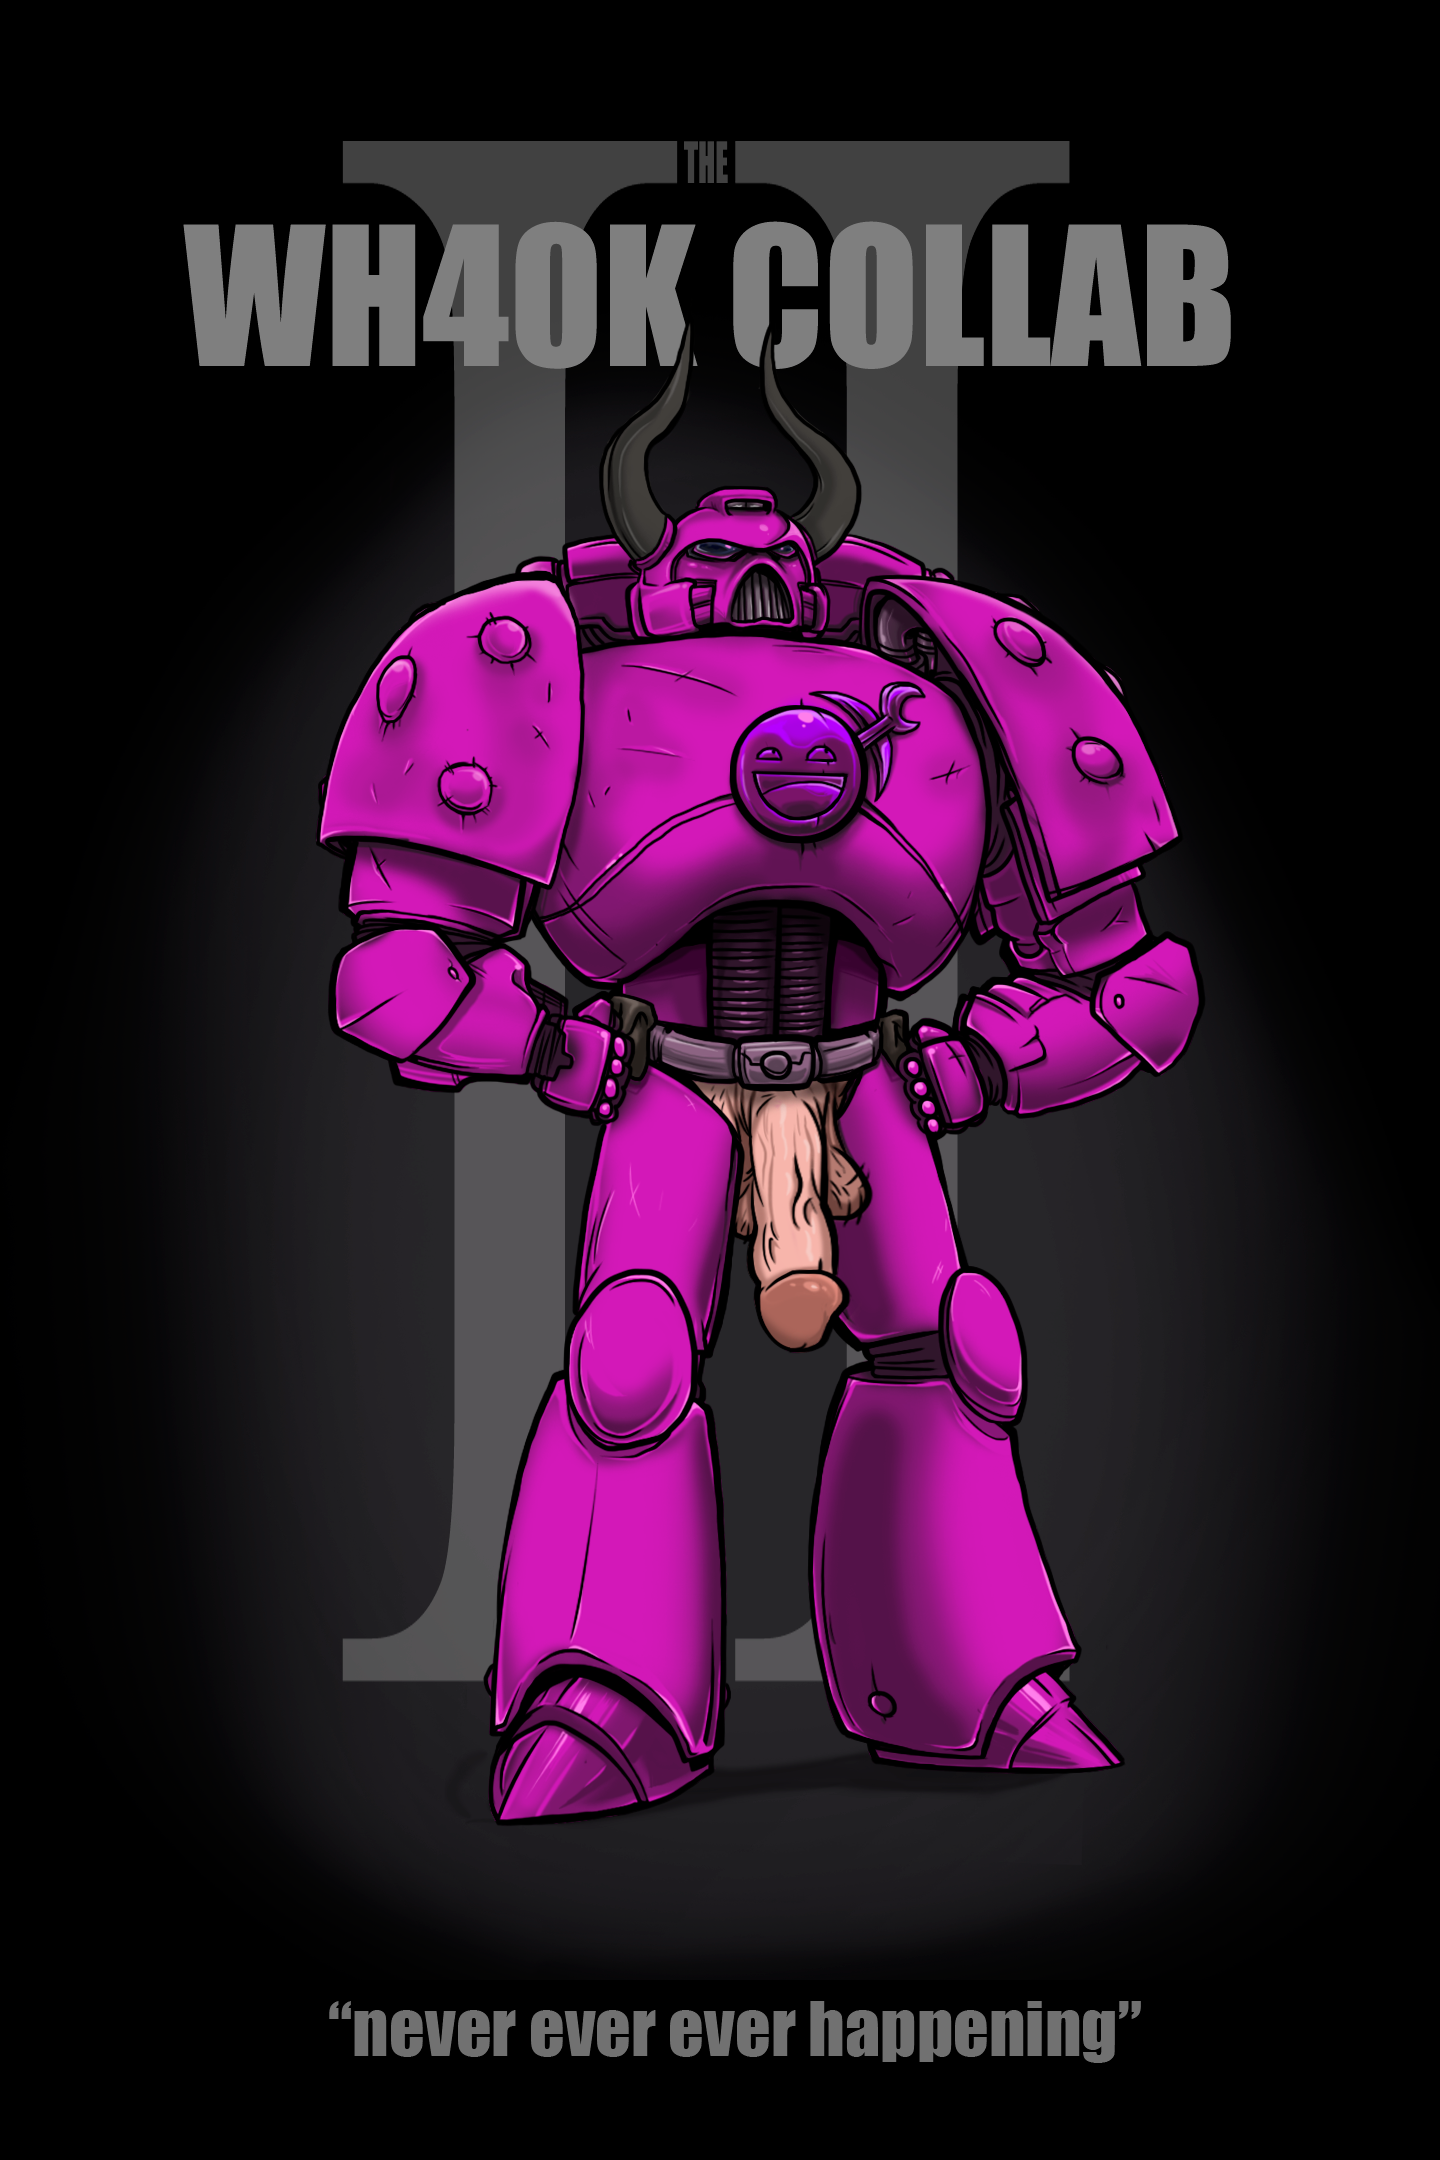 WH40k Collab 2 Promo Poster